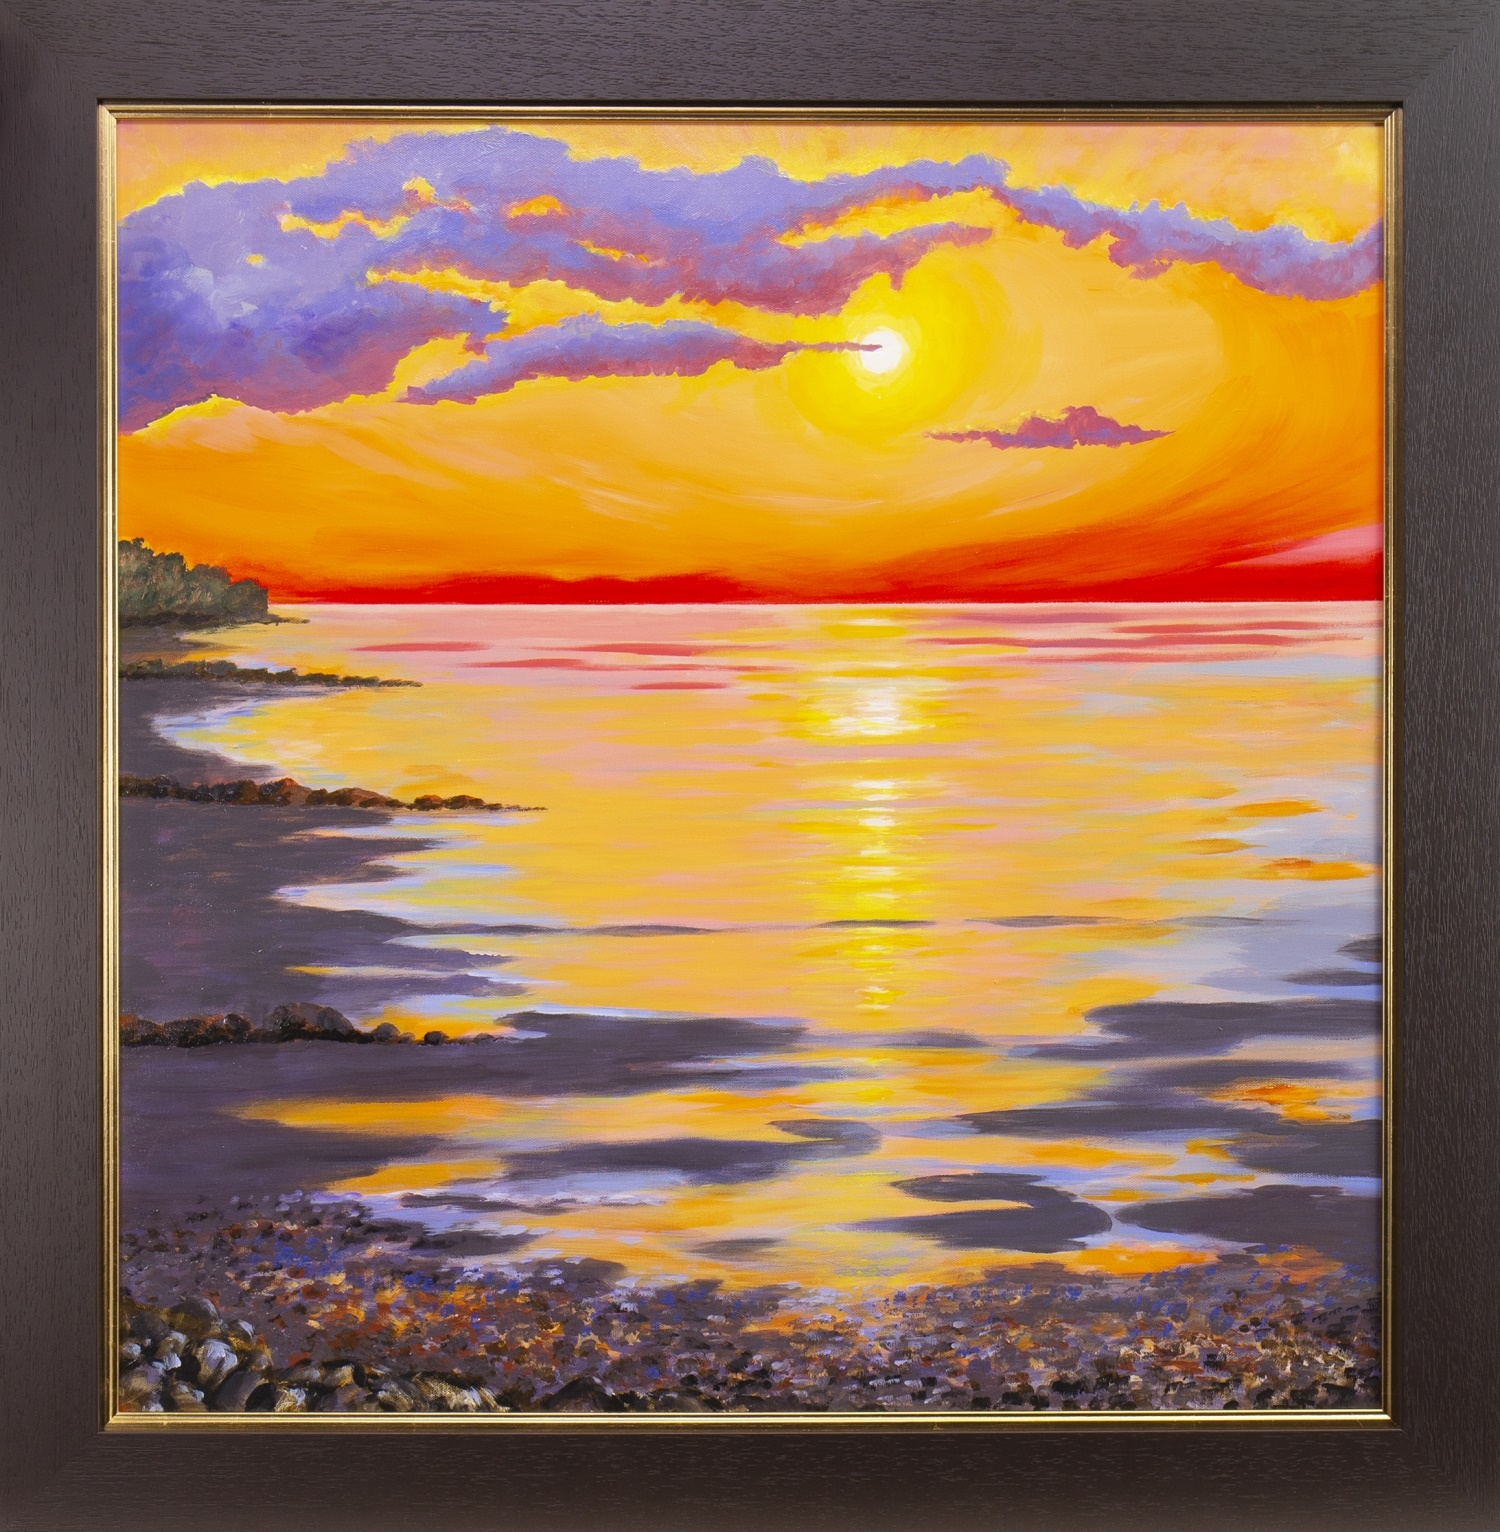 Lot 12 - BRIGHT SUNSET, AN OIL BY SANDRA FRANCIS